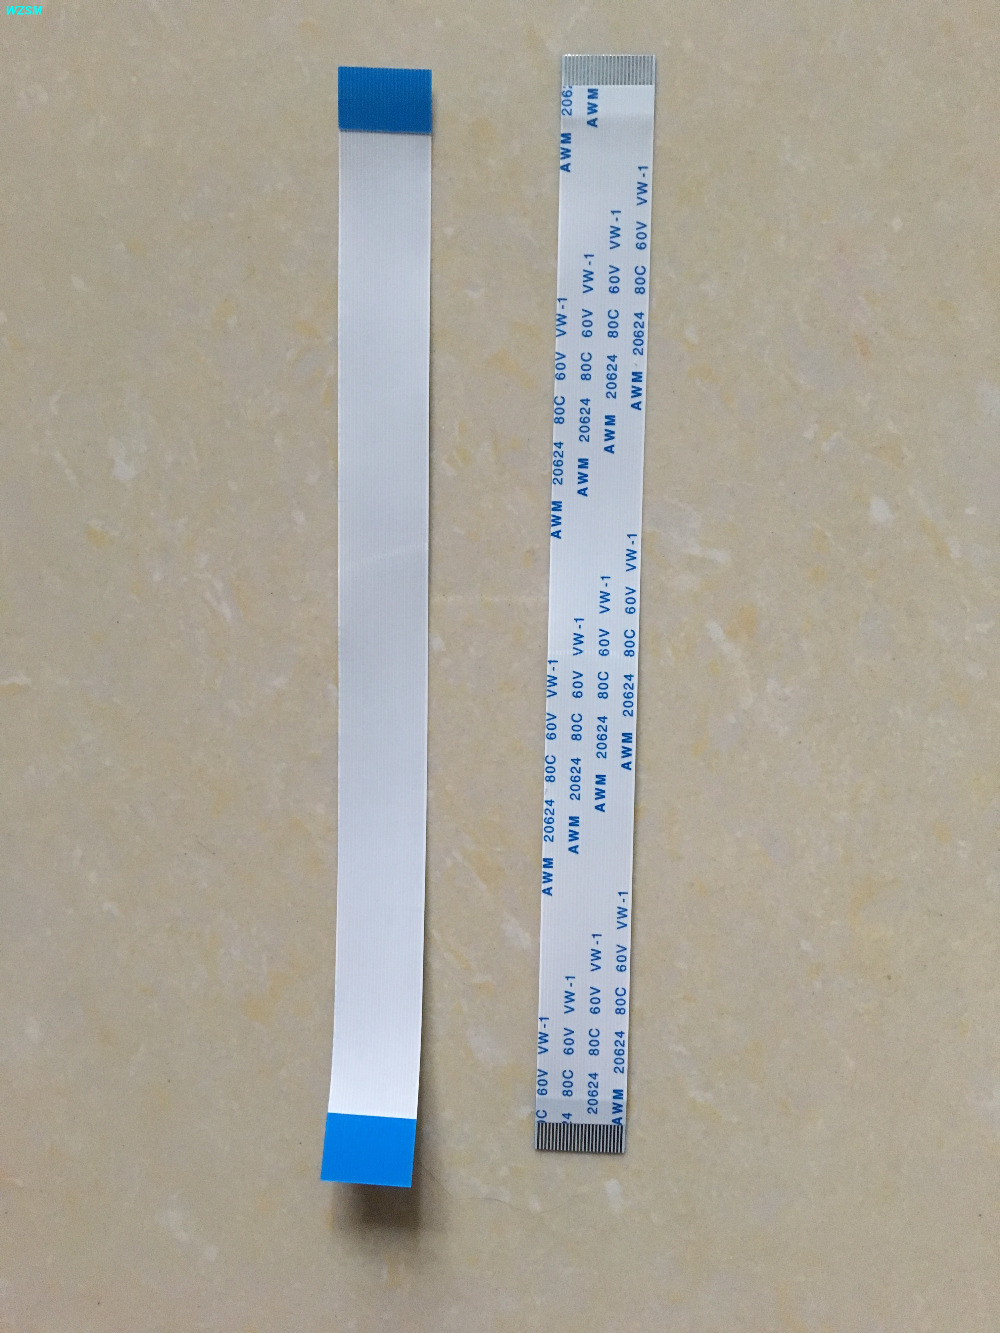 WZSM New AWM 20624 80C 60V FFC FPC Cable 0.5 mm Pitch 24 Pin 25mm 50mm 100mm 140mm 150mm Forward Direction 100pcs reverse ribbon cable awm 20624 80c 60v 1 0 mm 10 pin 200mm 10p 20cm fpc cable